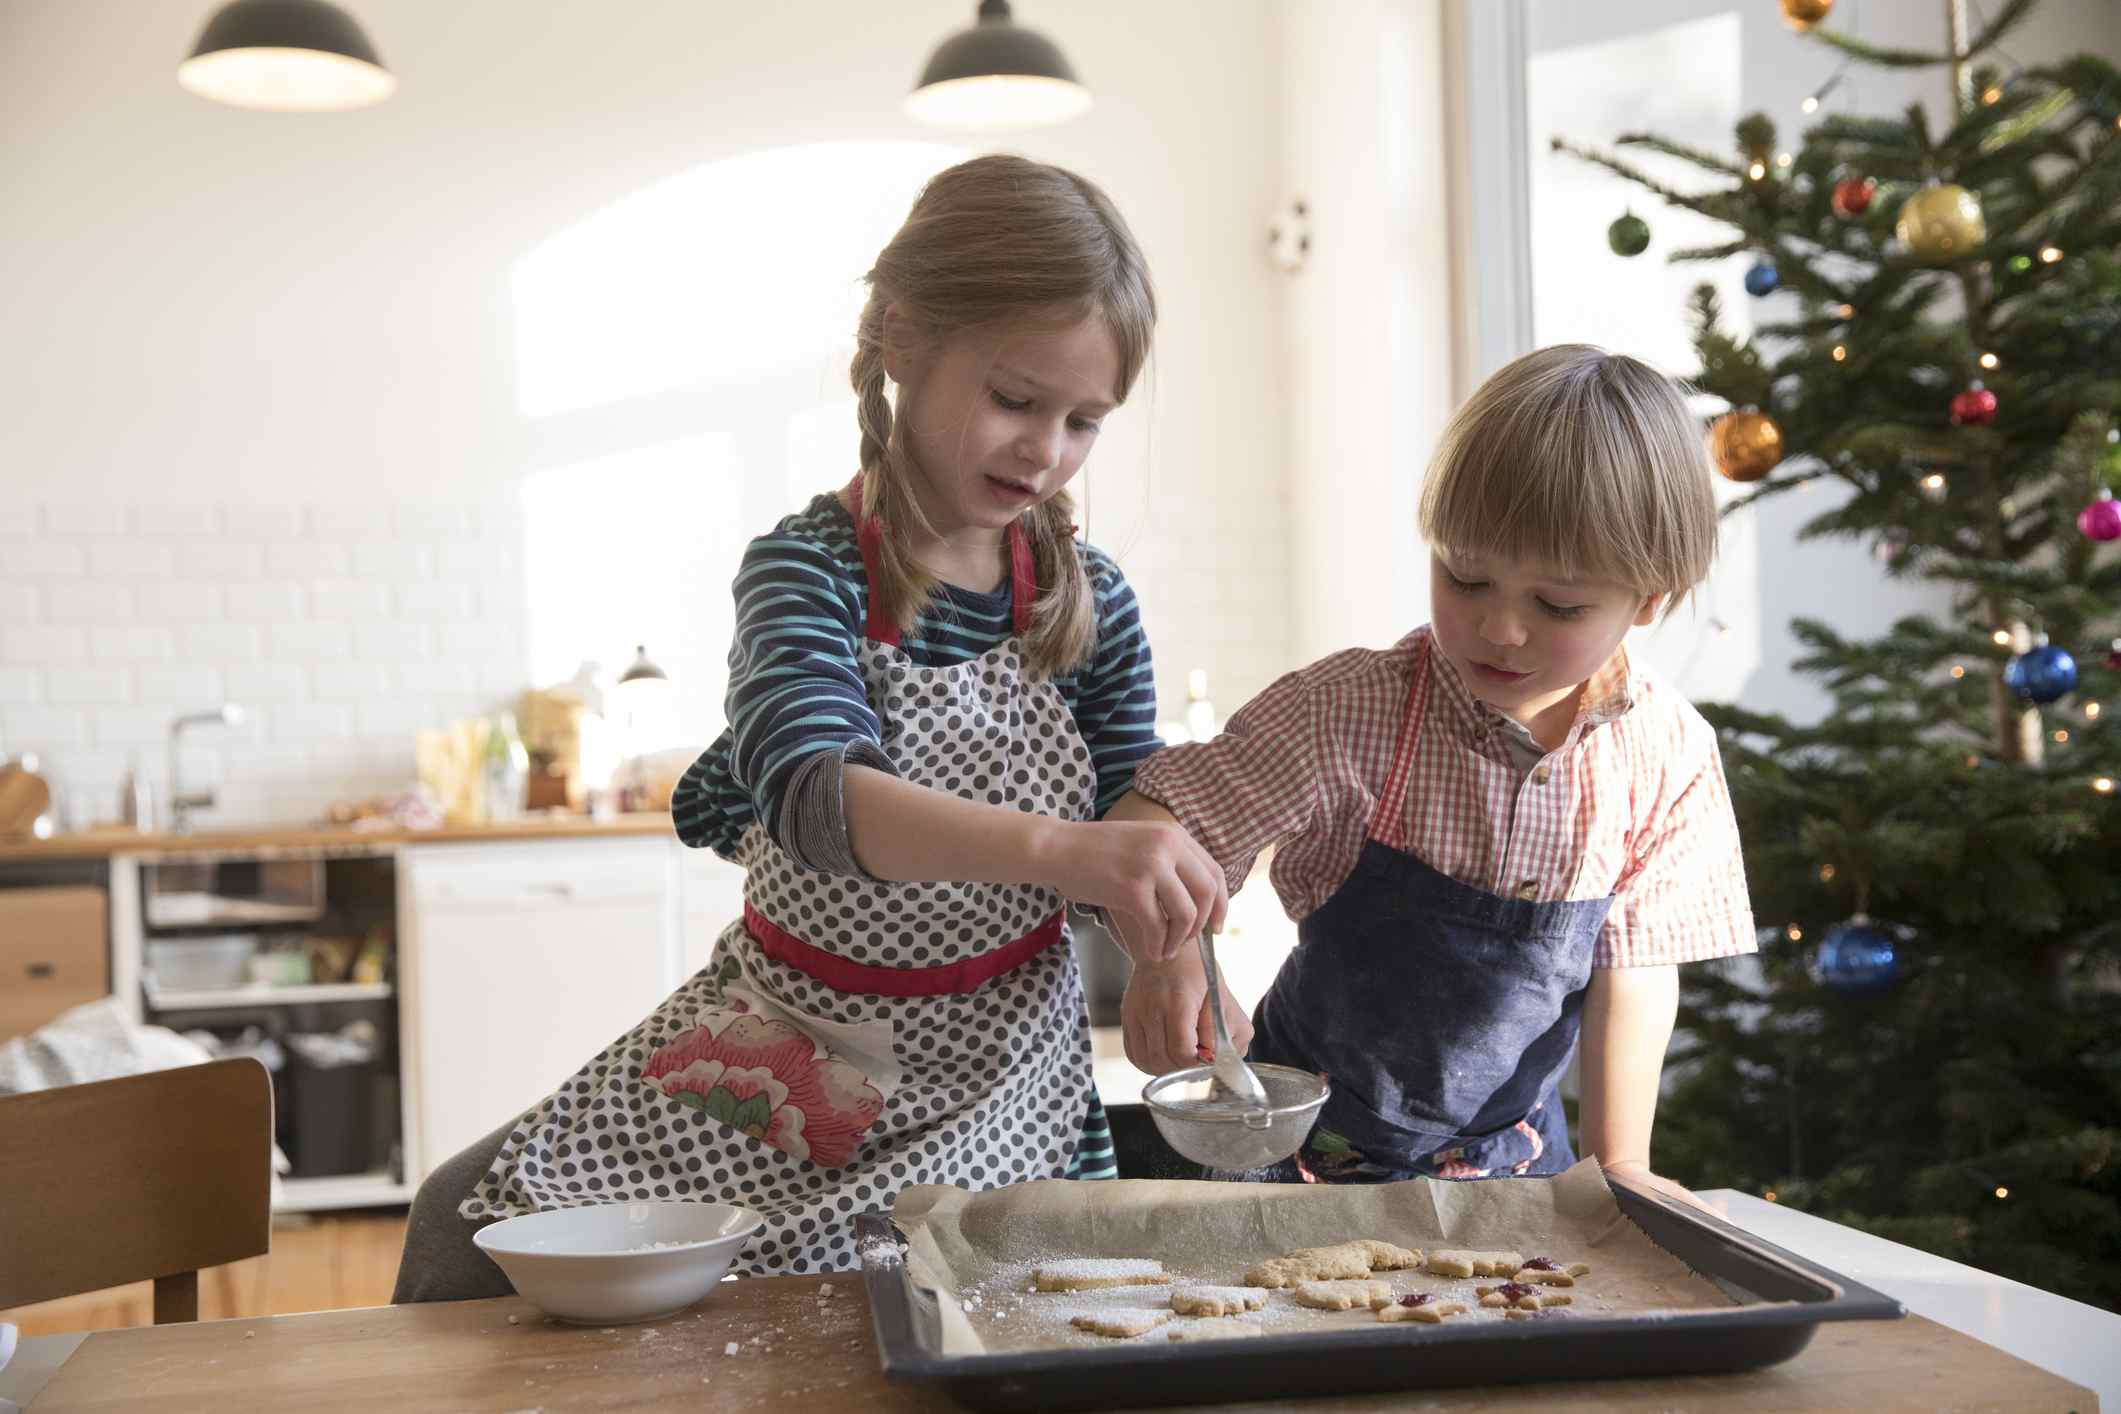 Sister and brother making cookies at christmas